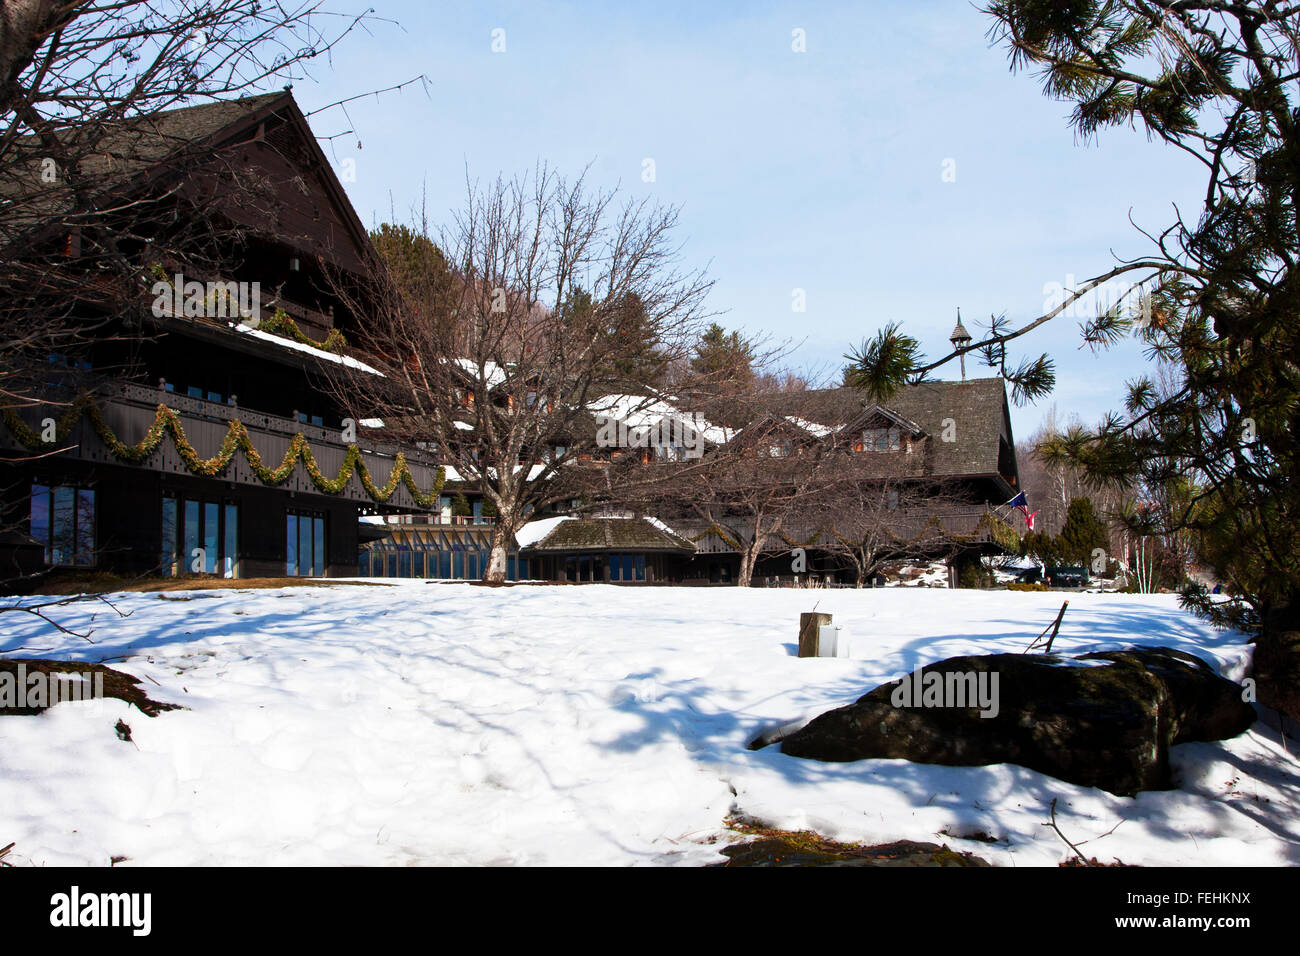 The Von Trapp Family Lodge in Stowe Vermont, USA, this image shows The main building of the Trapp Family Lodge - Stock Image